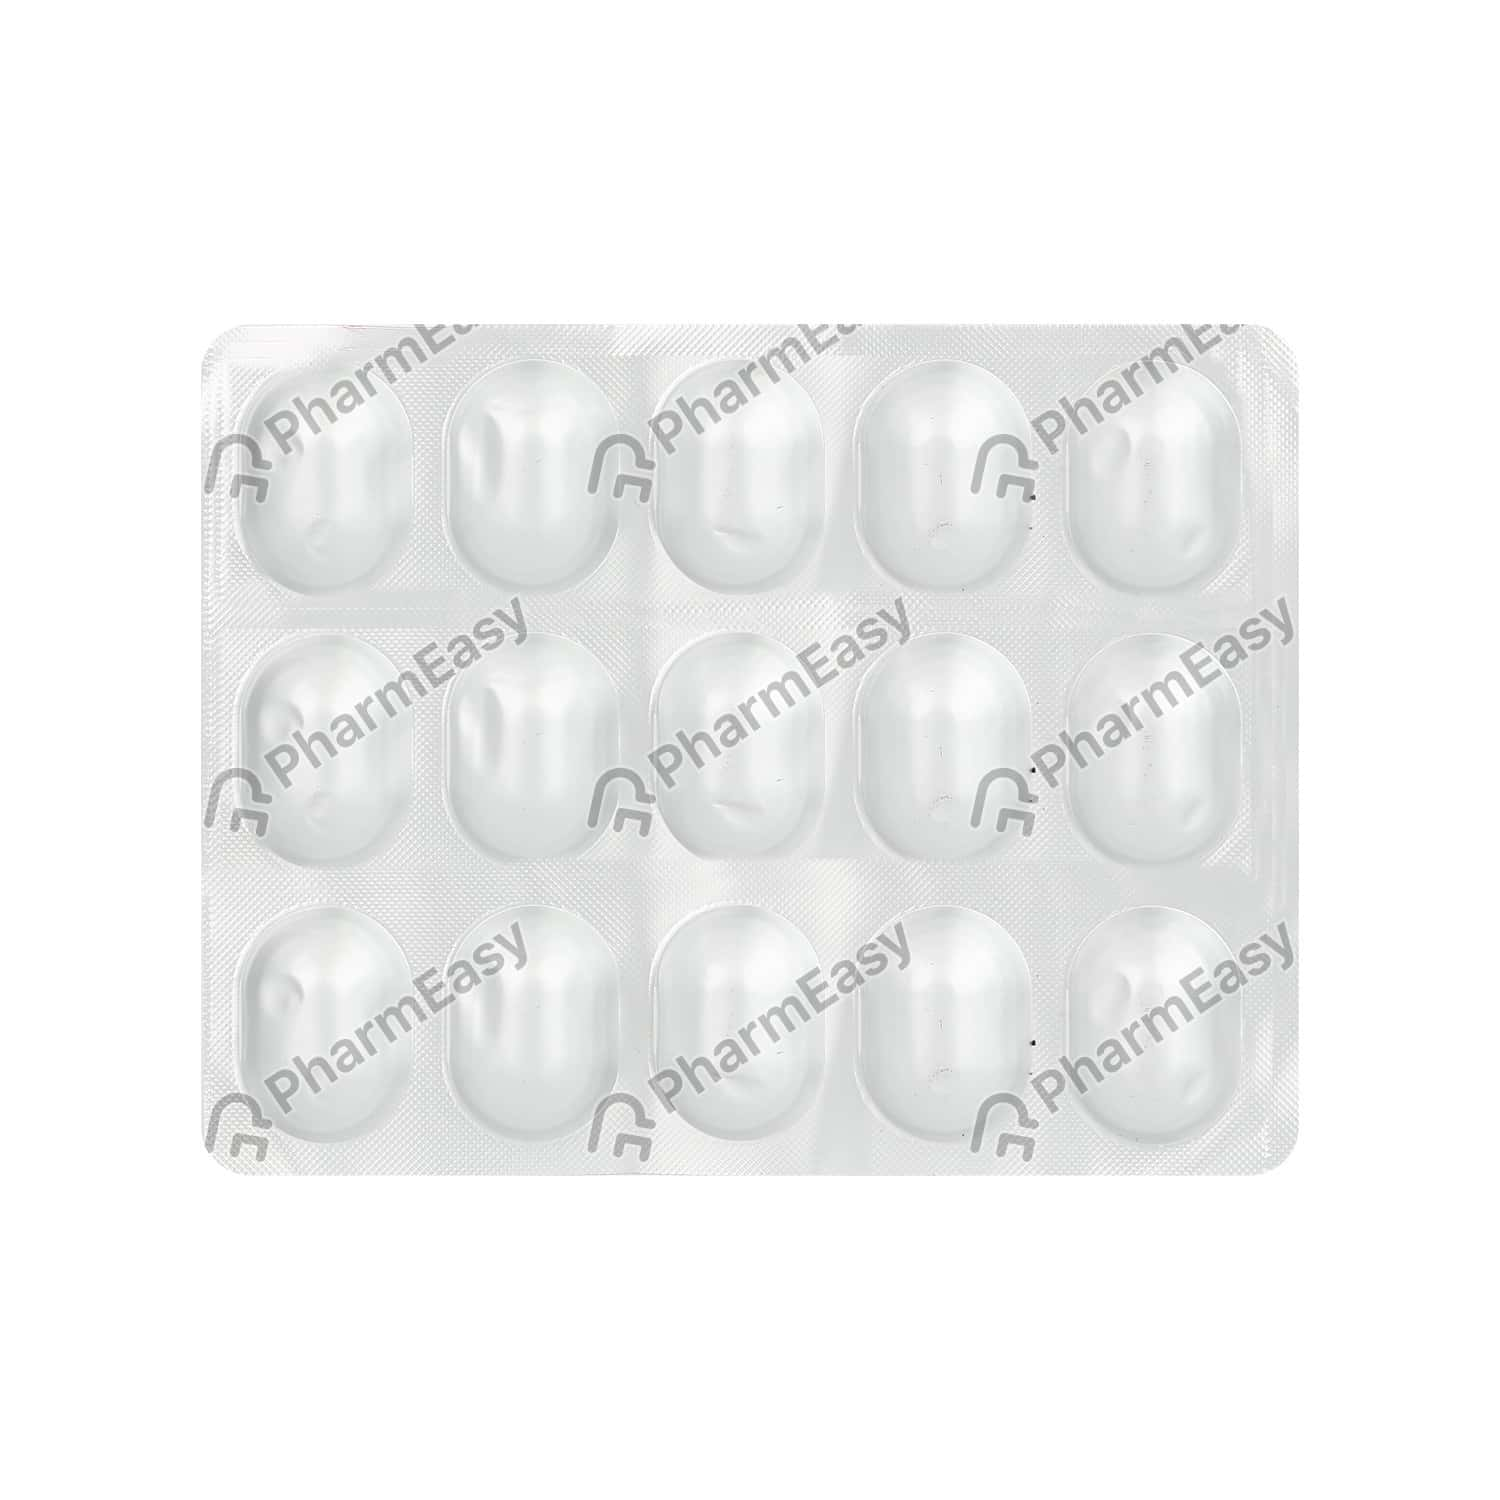 Depakote Xr 500mg Tablet